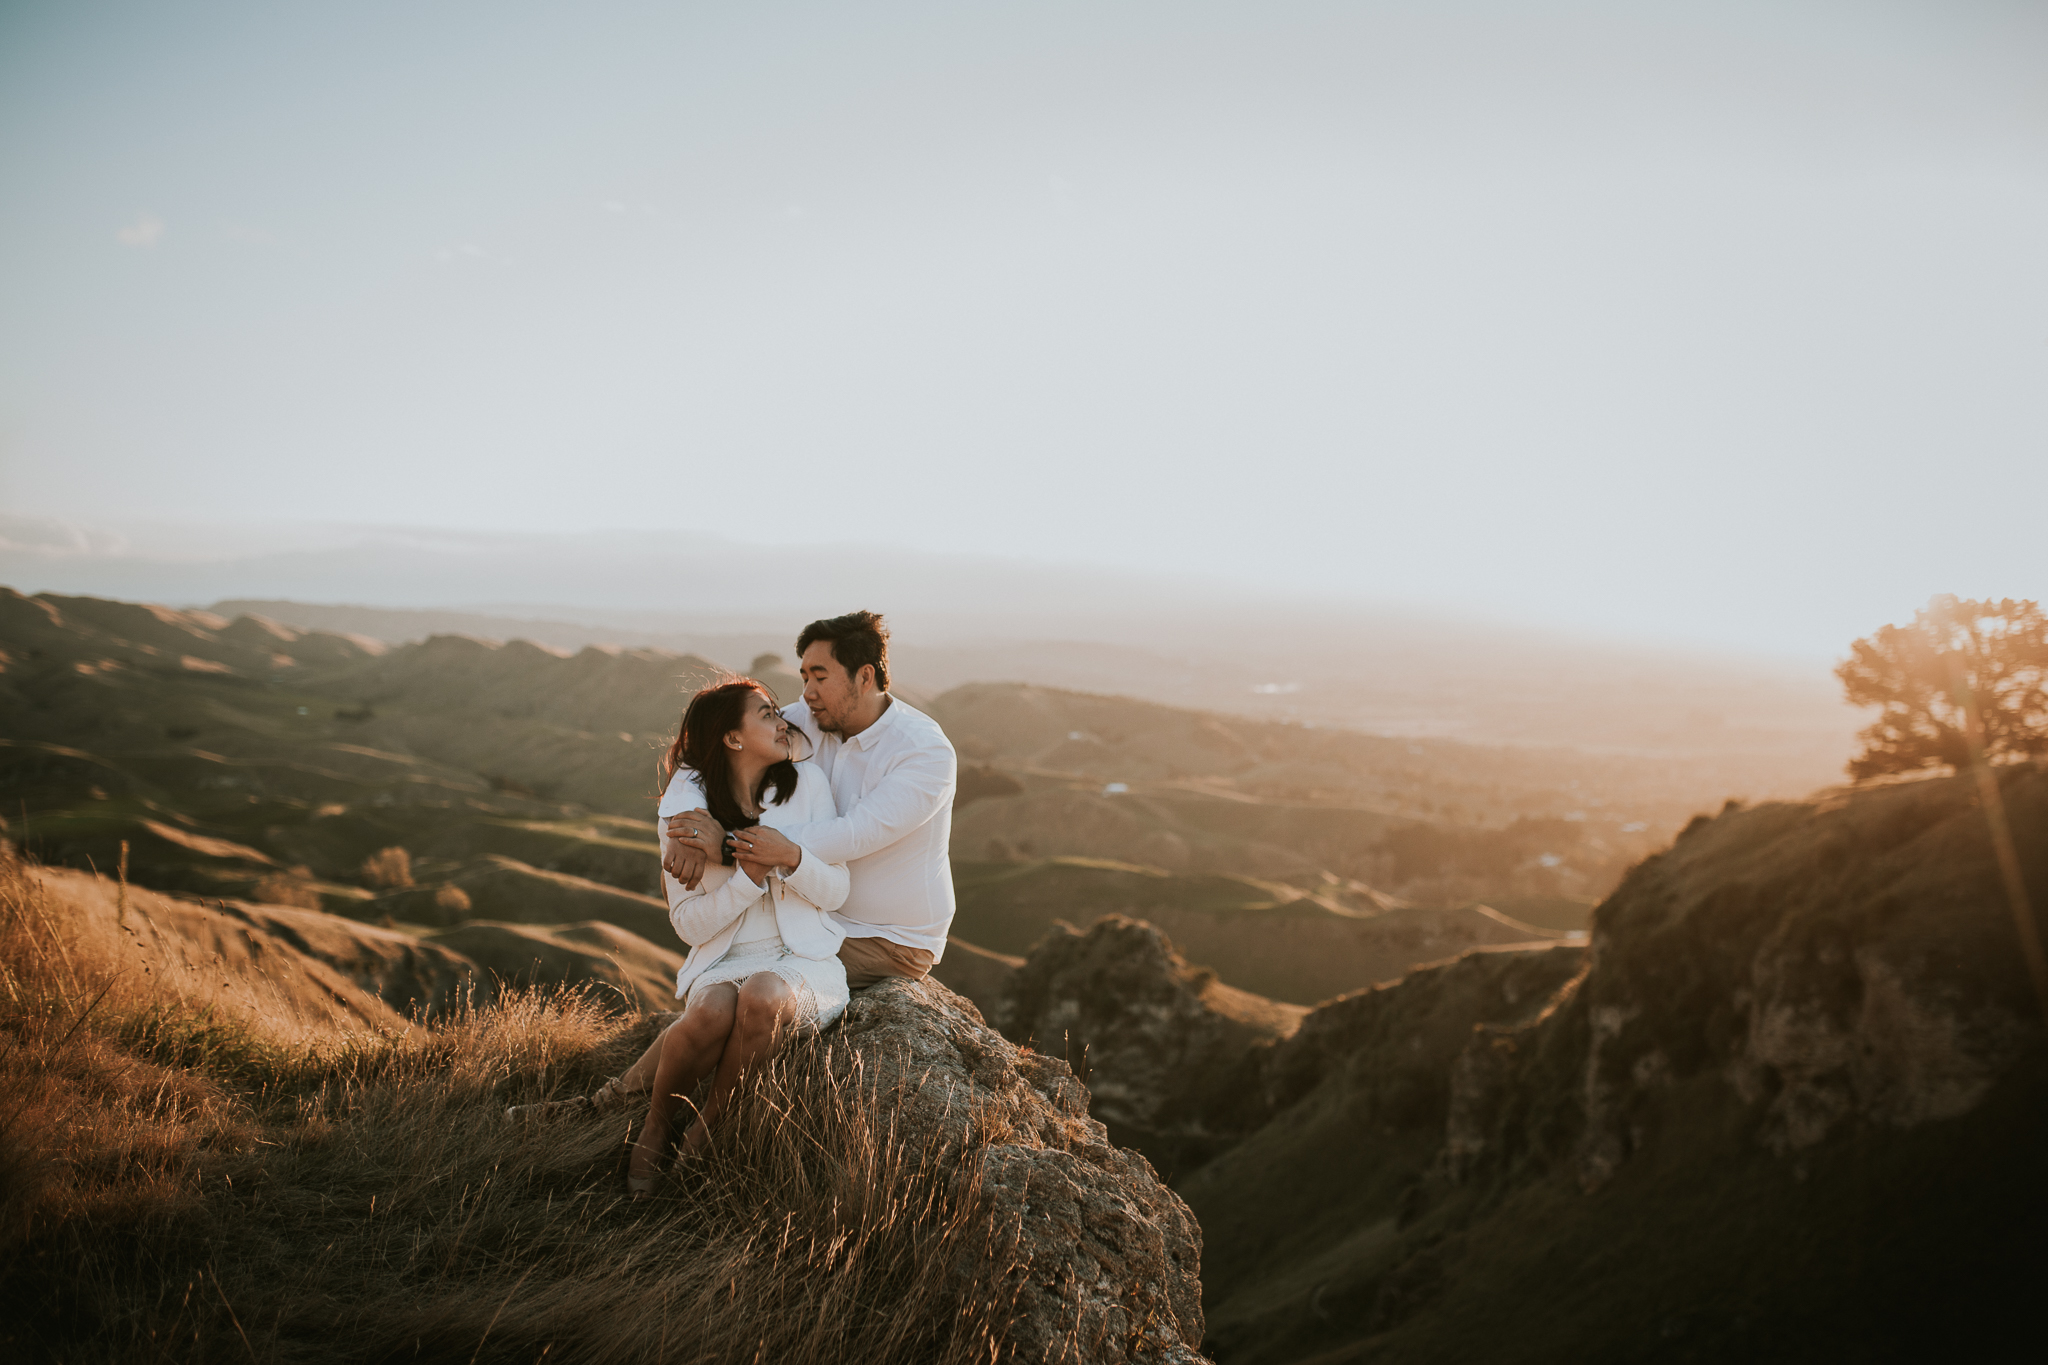 Wedding Photographers Hawkes Bay Te Mata Peak Engagement Shoot Sunset-29.jpg